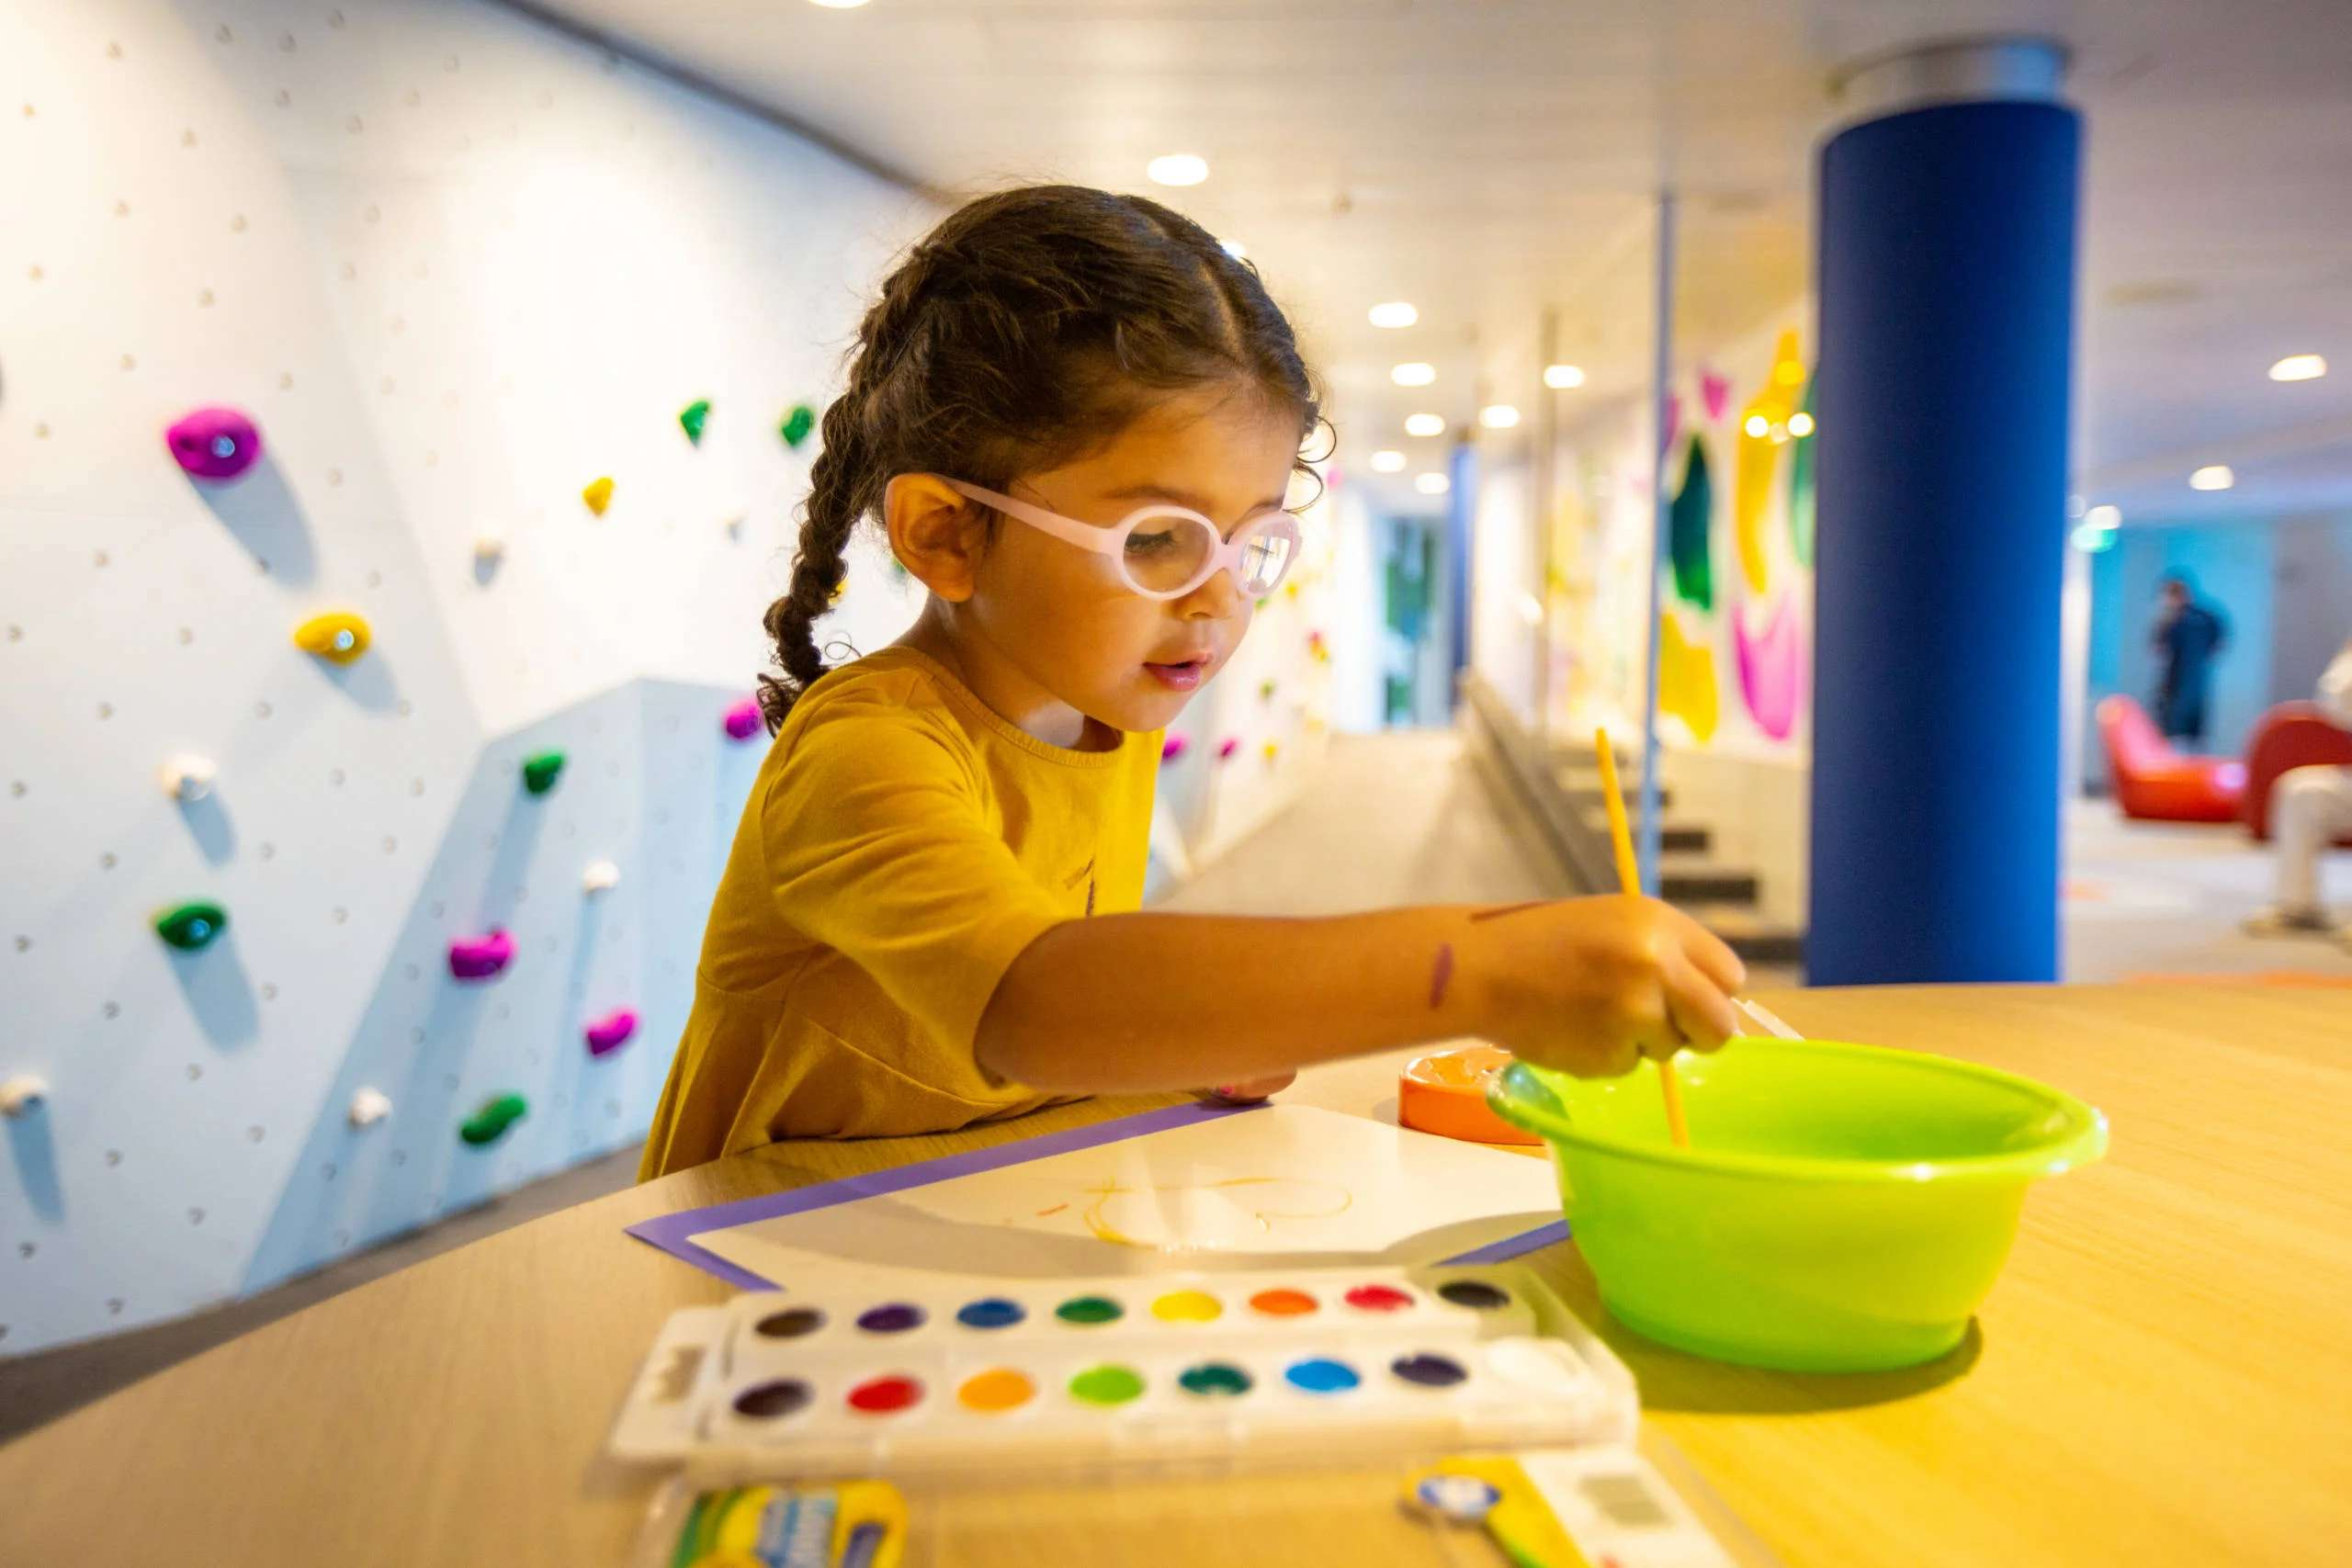 Arts and crafts are among the activities for children at the Adventure Ocean kids program area on Royal Caribbean ships. (Photo courtesy of Royal Caribbean)